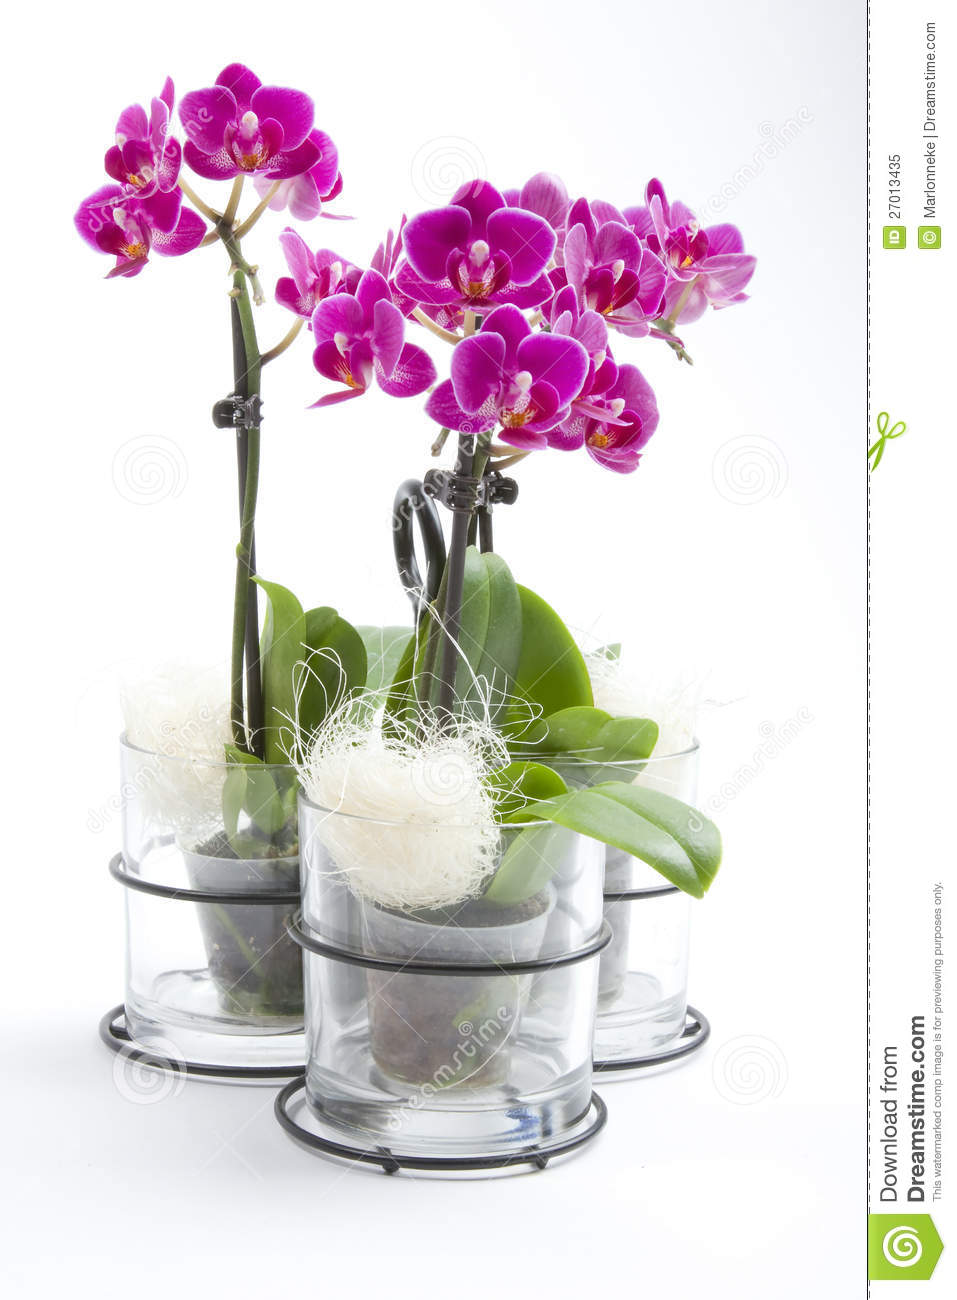 phalaenopsis orchid in flower pot stock image image of container white 27013435. Black Bedroom Furniture Sets. Home Design Ideas